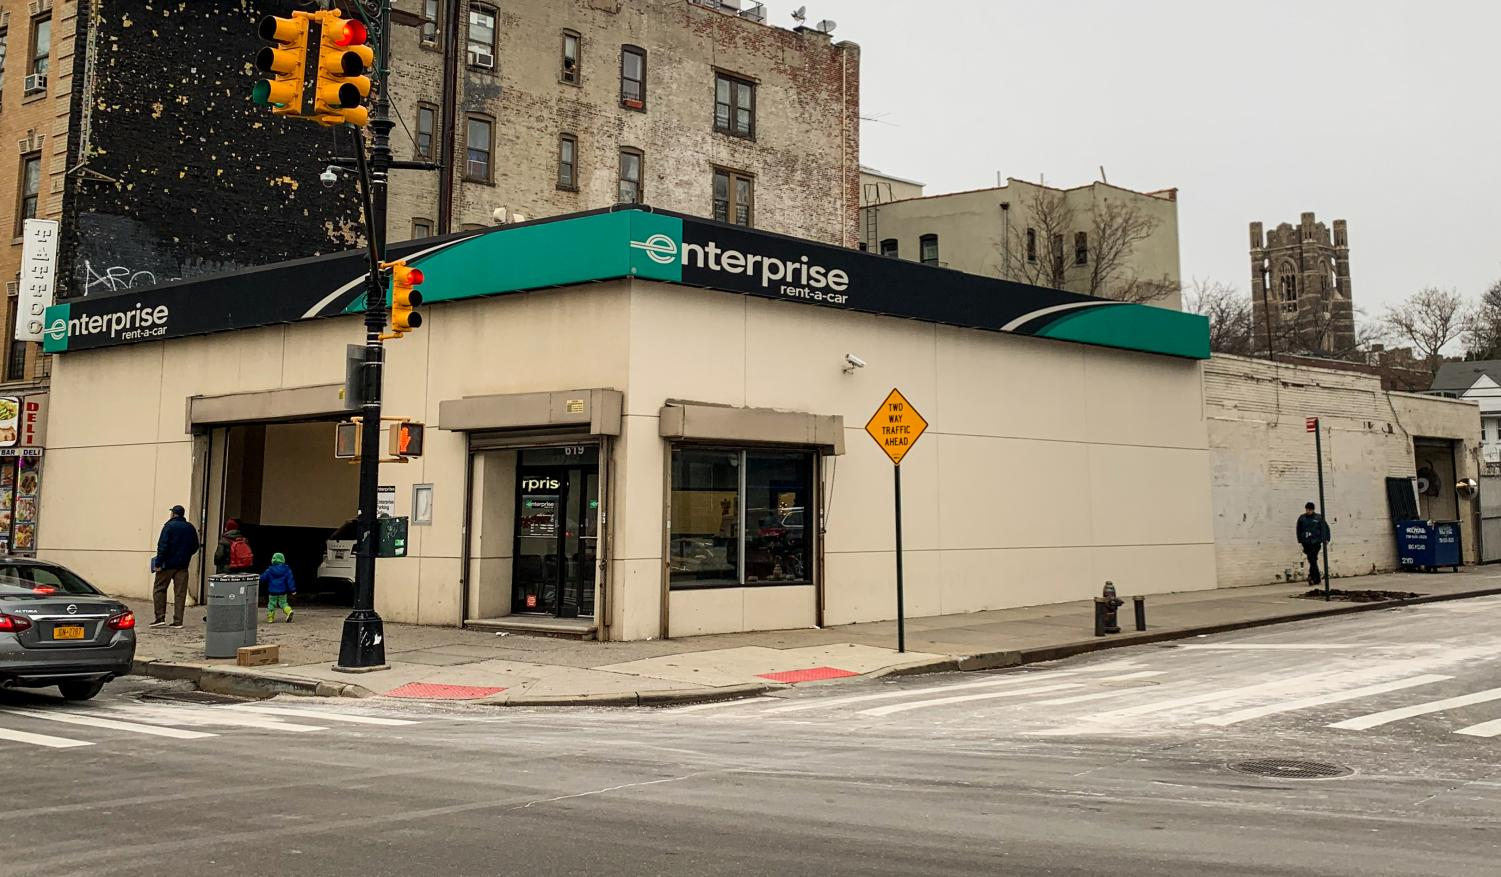 Enterprise Rent-A-Car will continue to lease the building from Fordham University while expansion plans are considered.